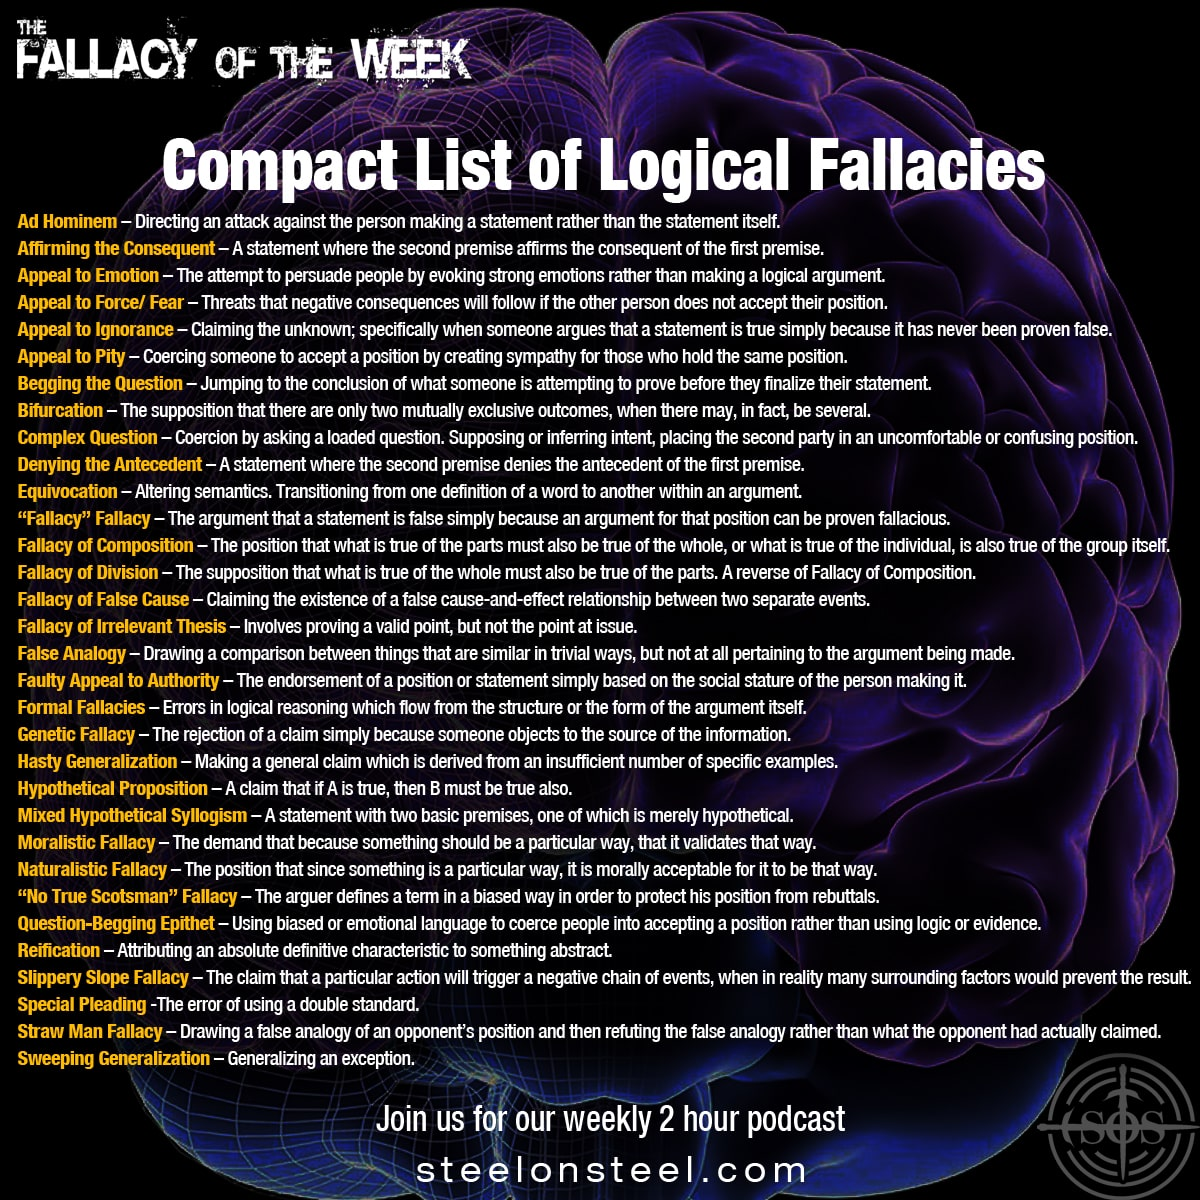 Logical Fallacies Quick Reference Guide